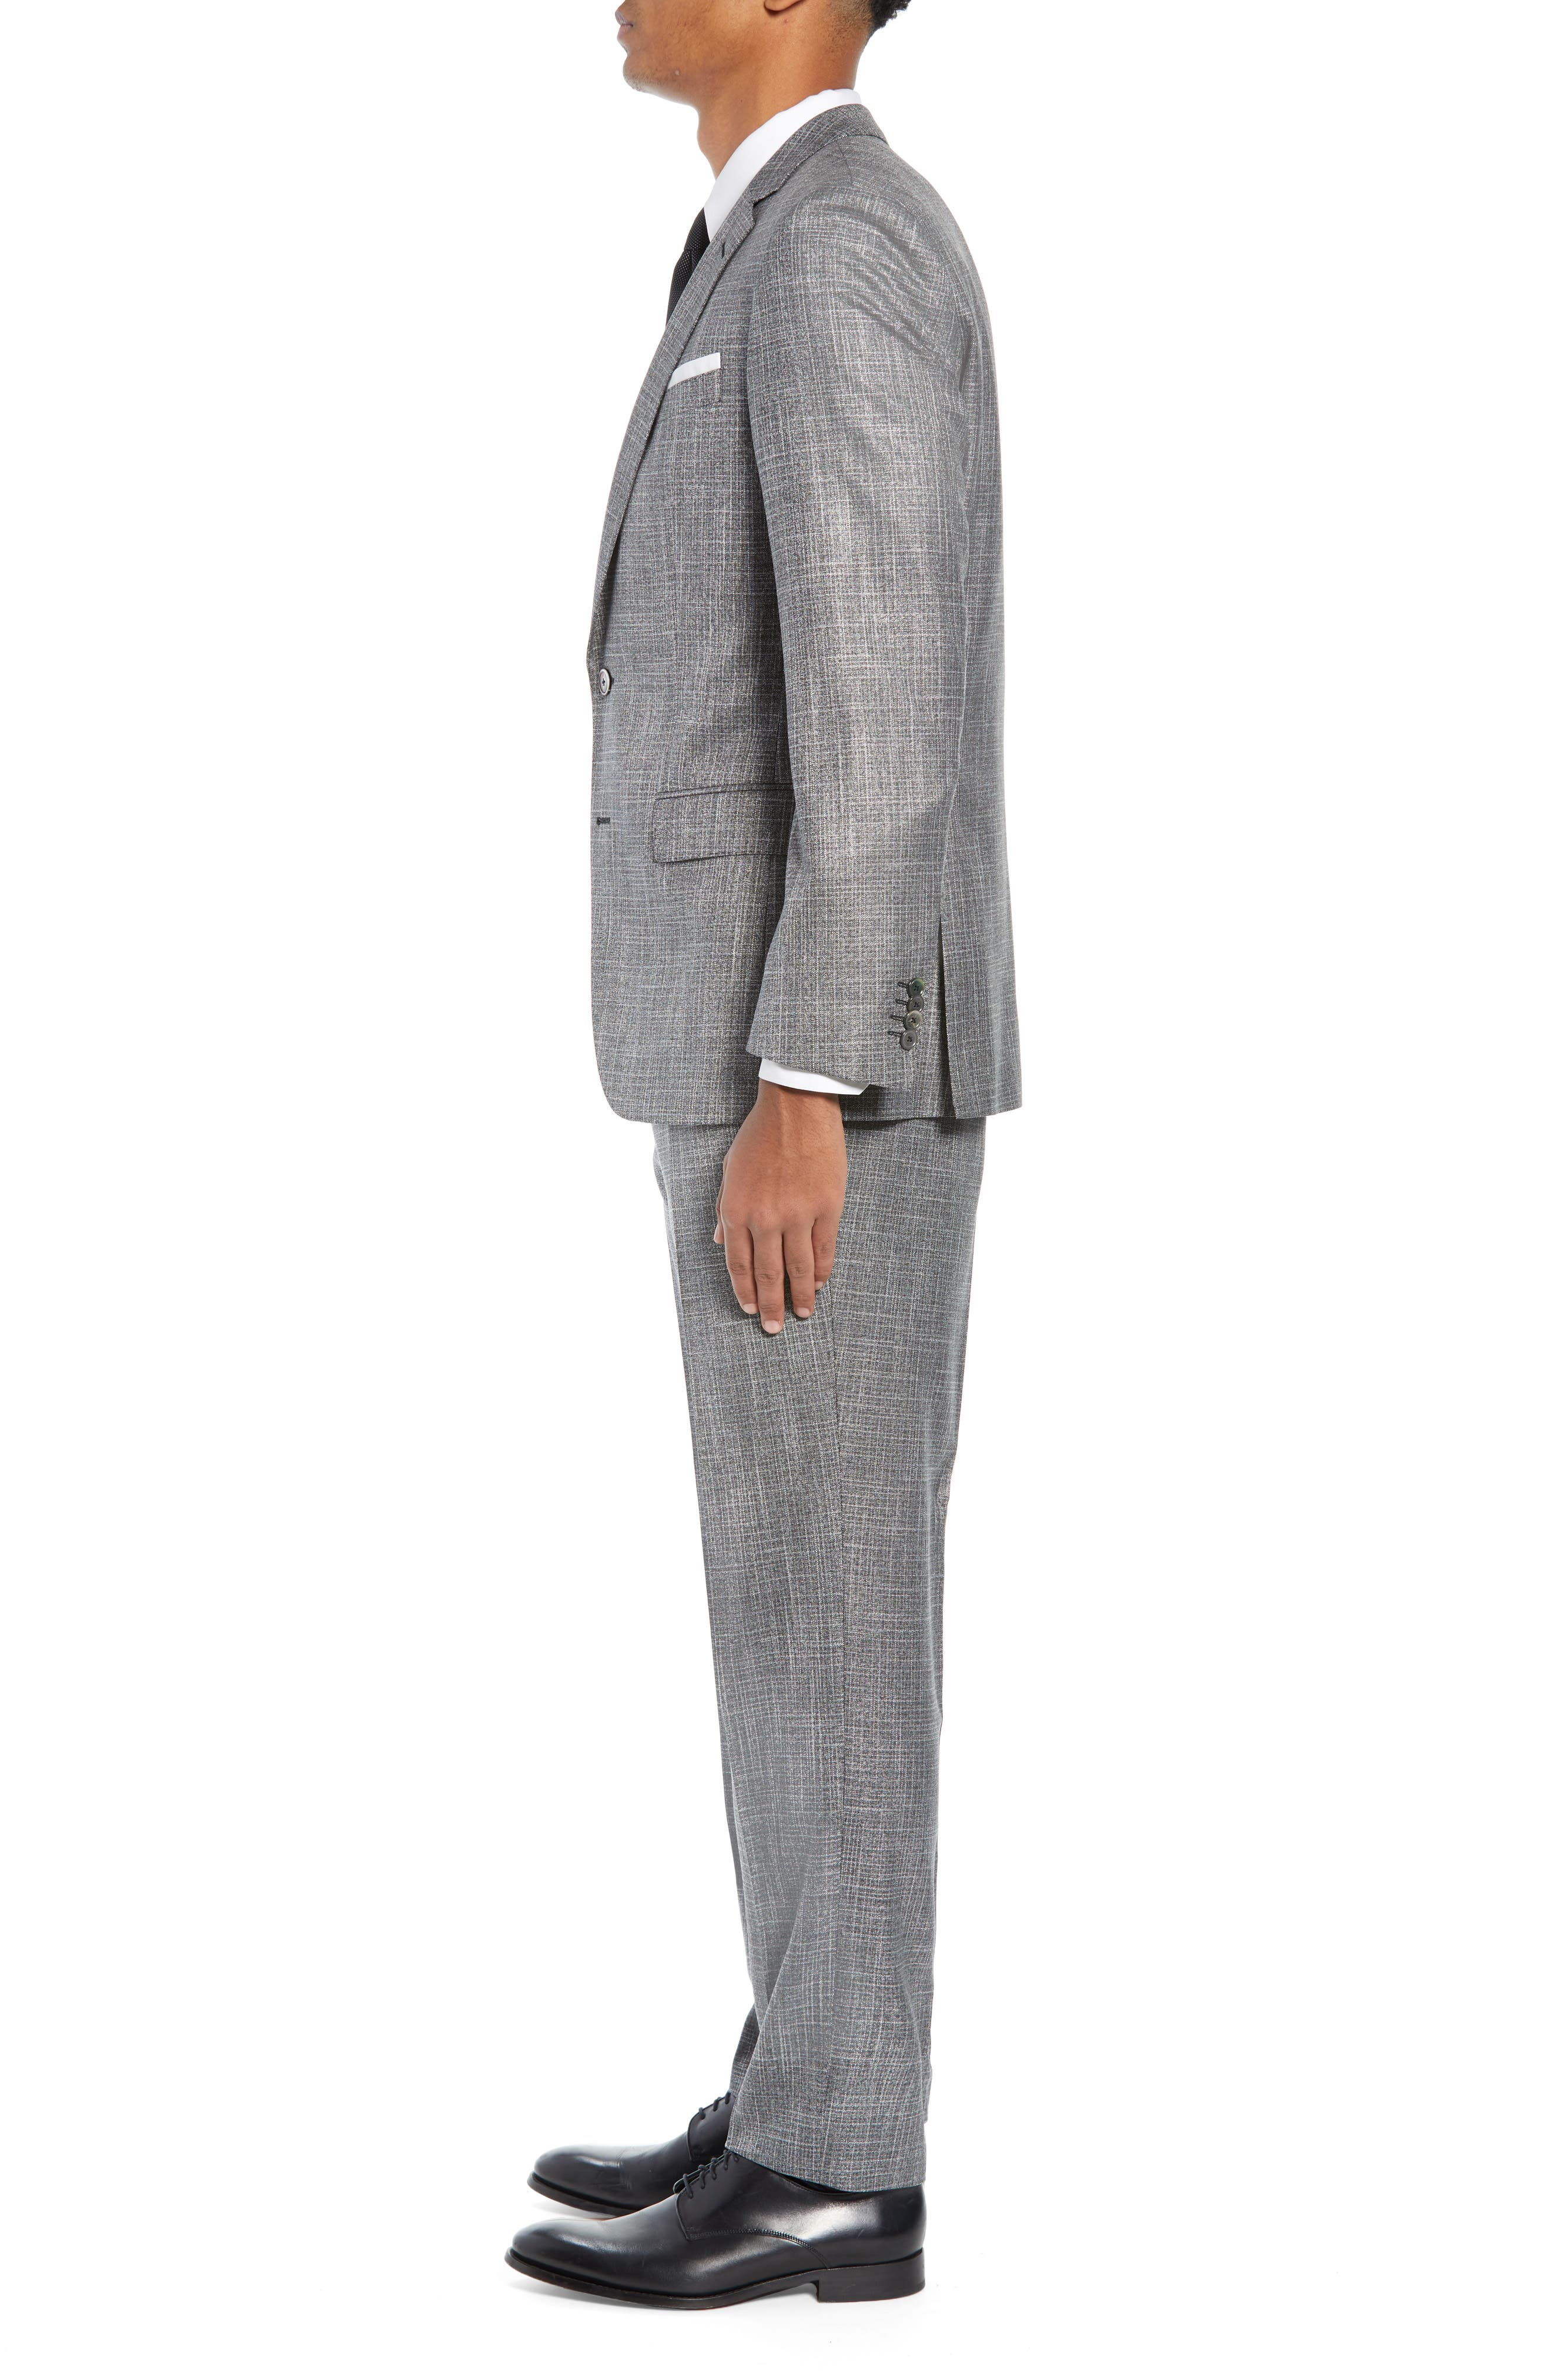 BOSS, Hutson/Gander Slim Fit Solid Wool Blend Suit, Alternate thumbnail 3, color, MEDIUM GREY